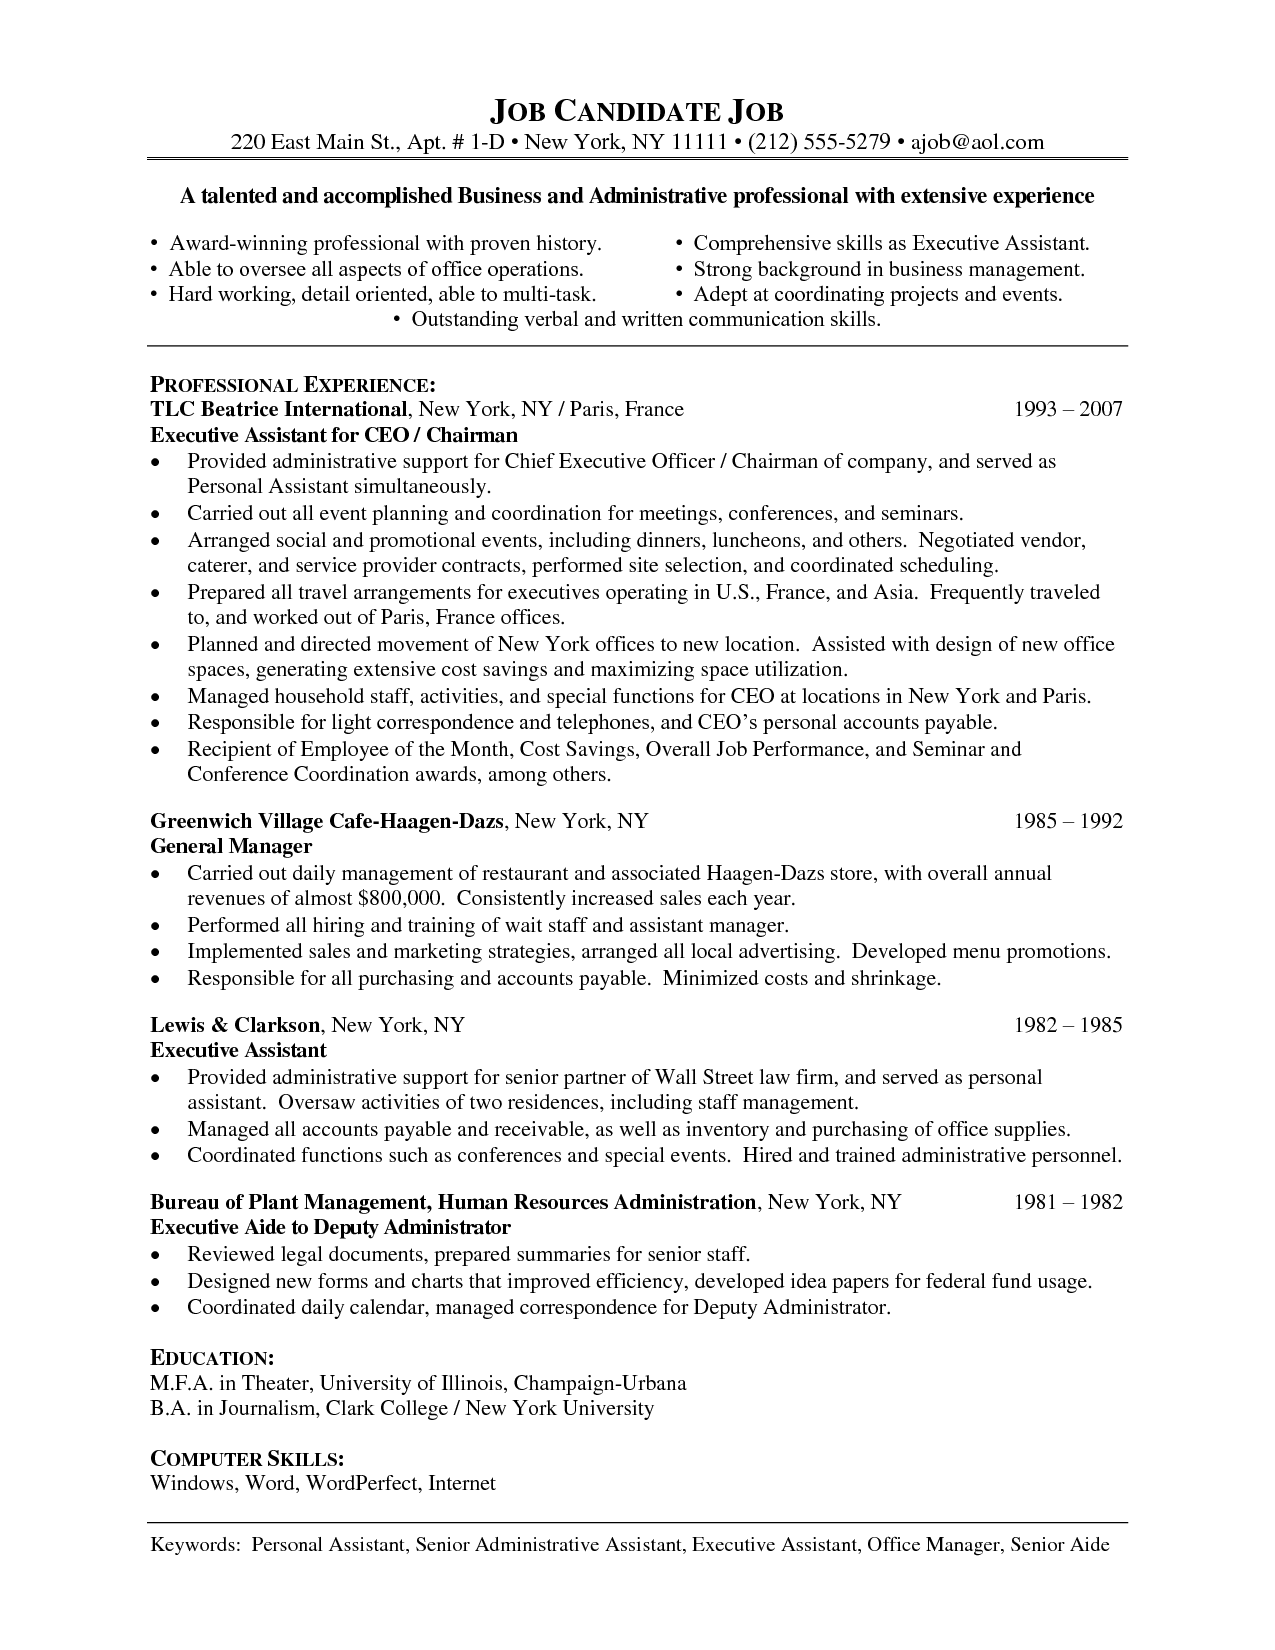 purchasing assistant resume functional resume template for administrative assistant word s - Admin Assistant Resume Template